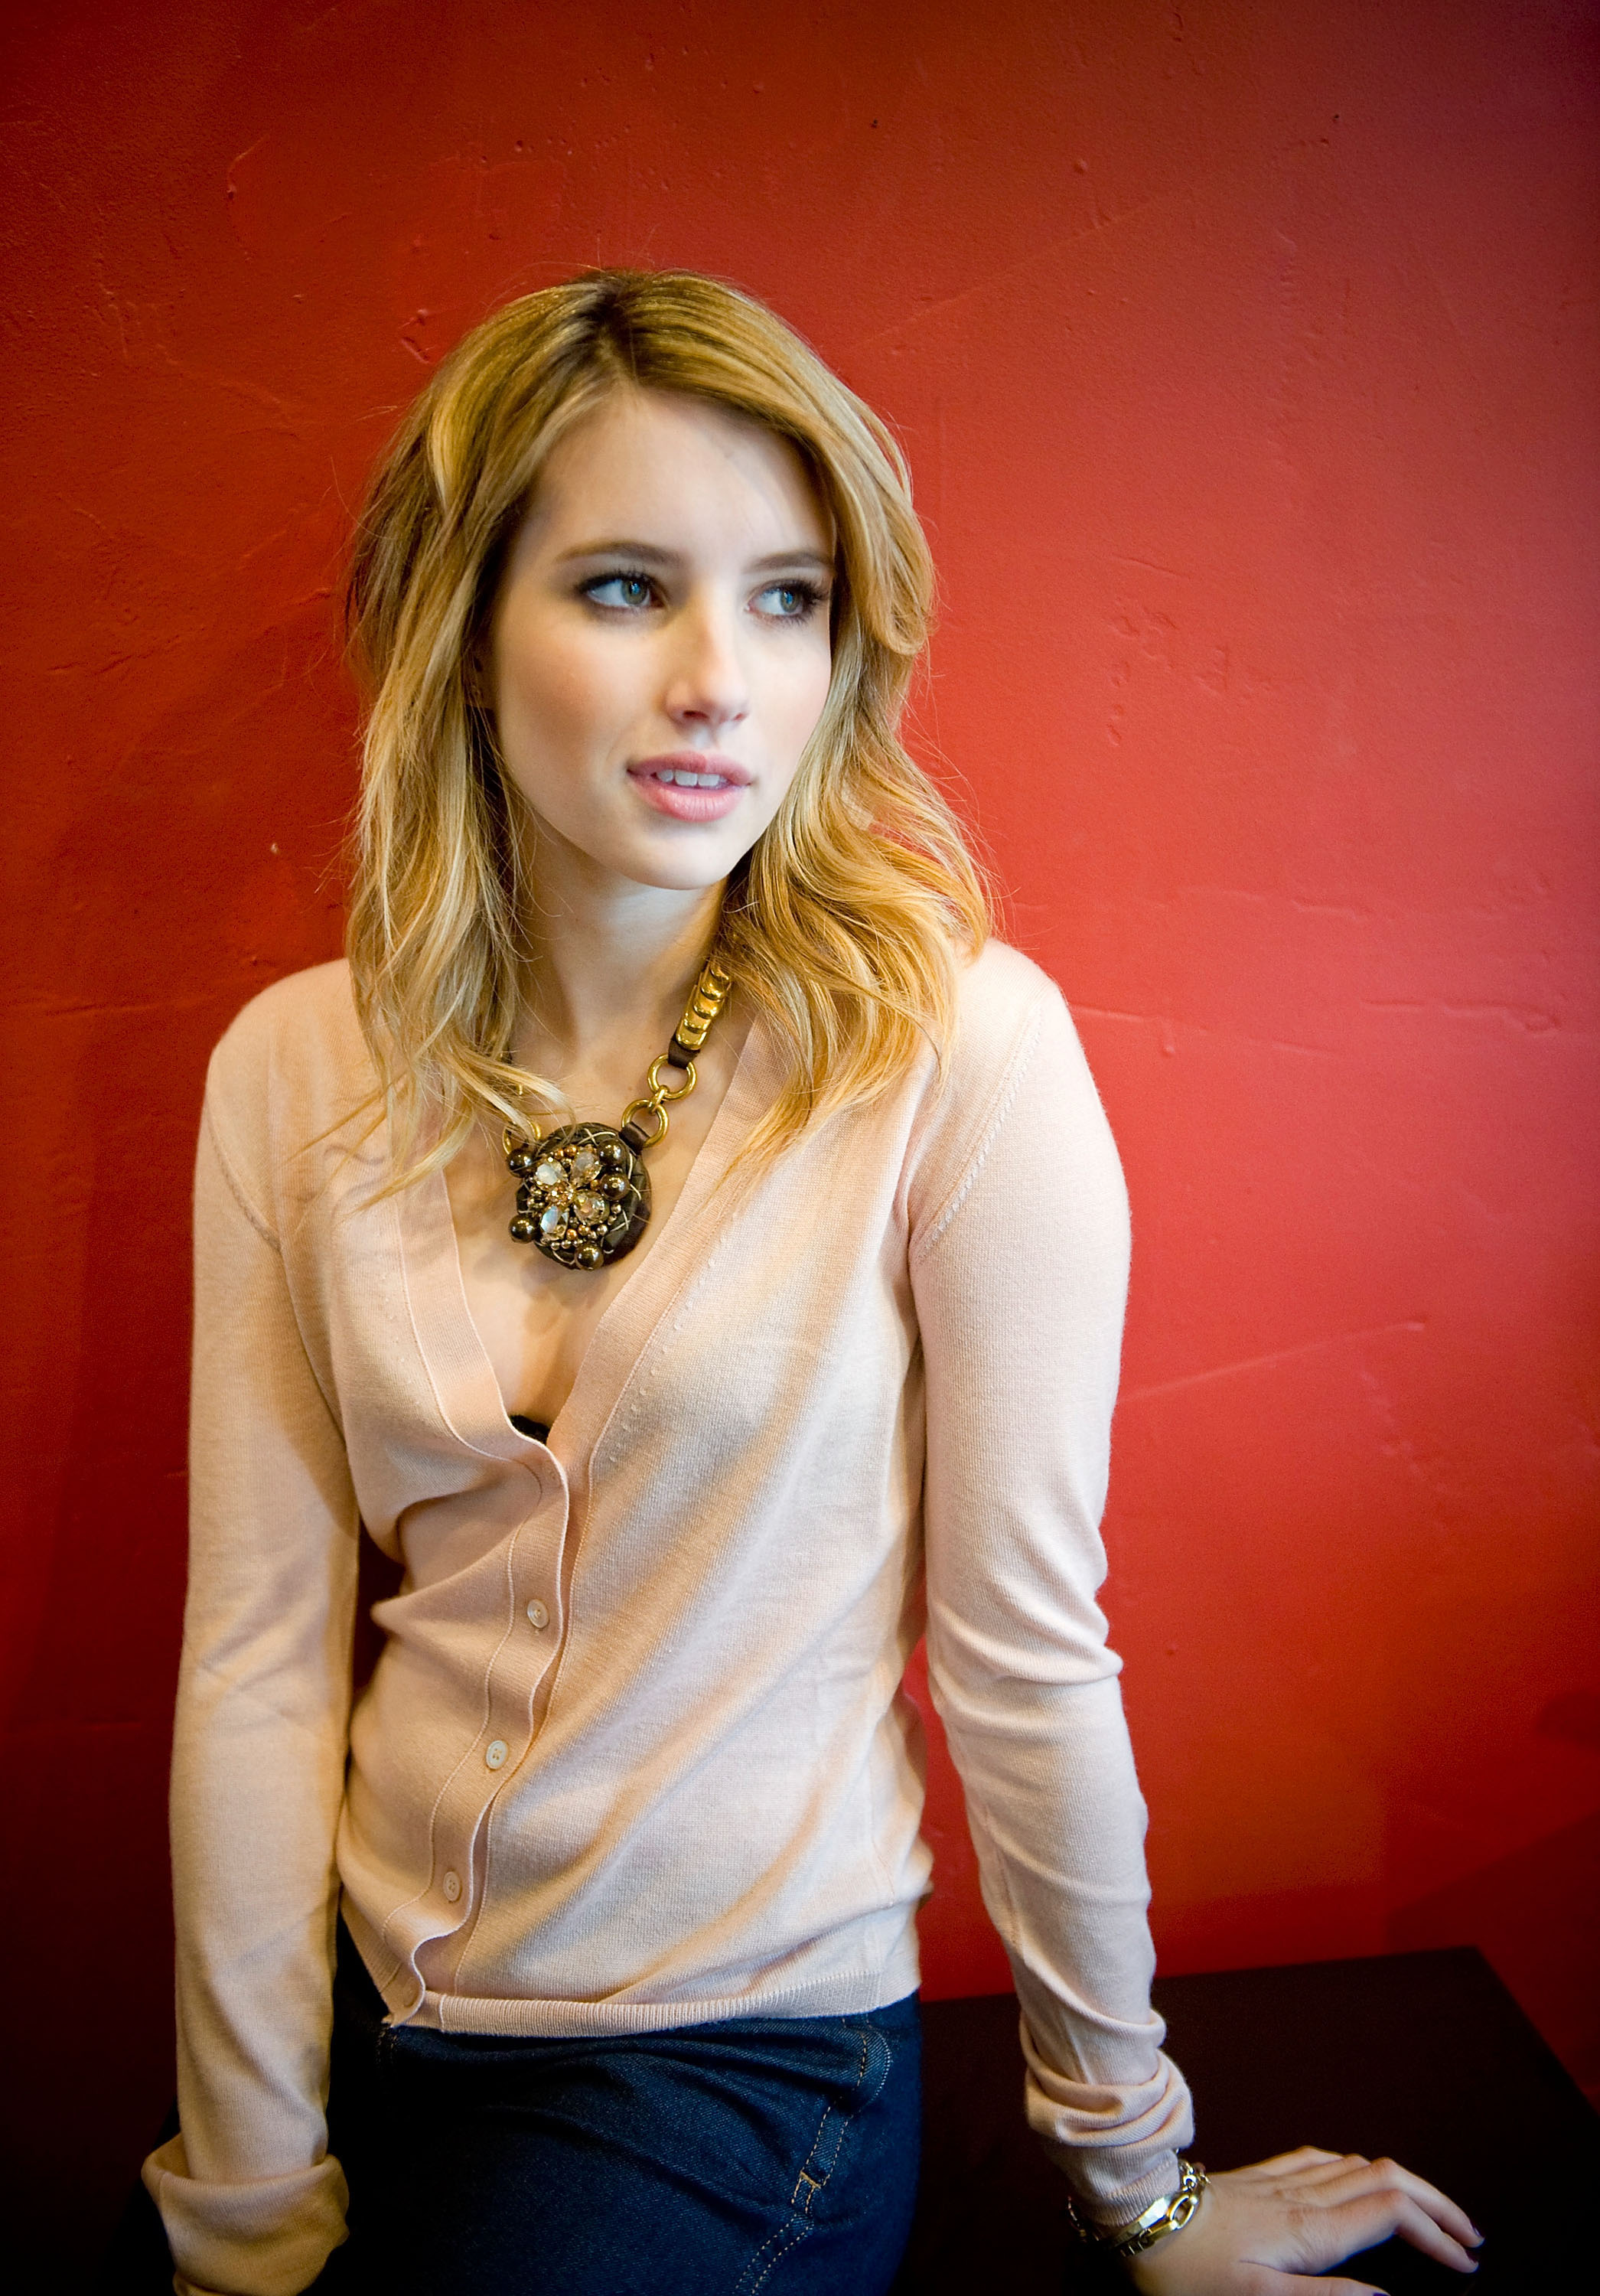 97057_Emma_Roberts_attends_the_Twelve_portraits_session_at_Silver_Queen_Gallery-003_122_1187lo.jpg